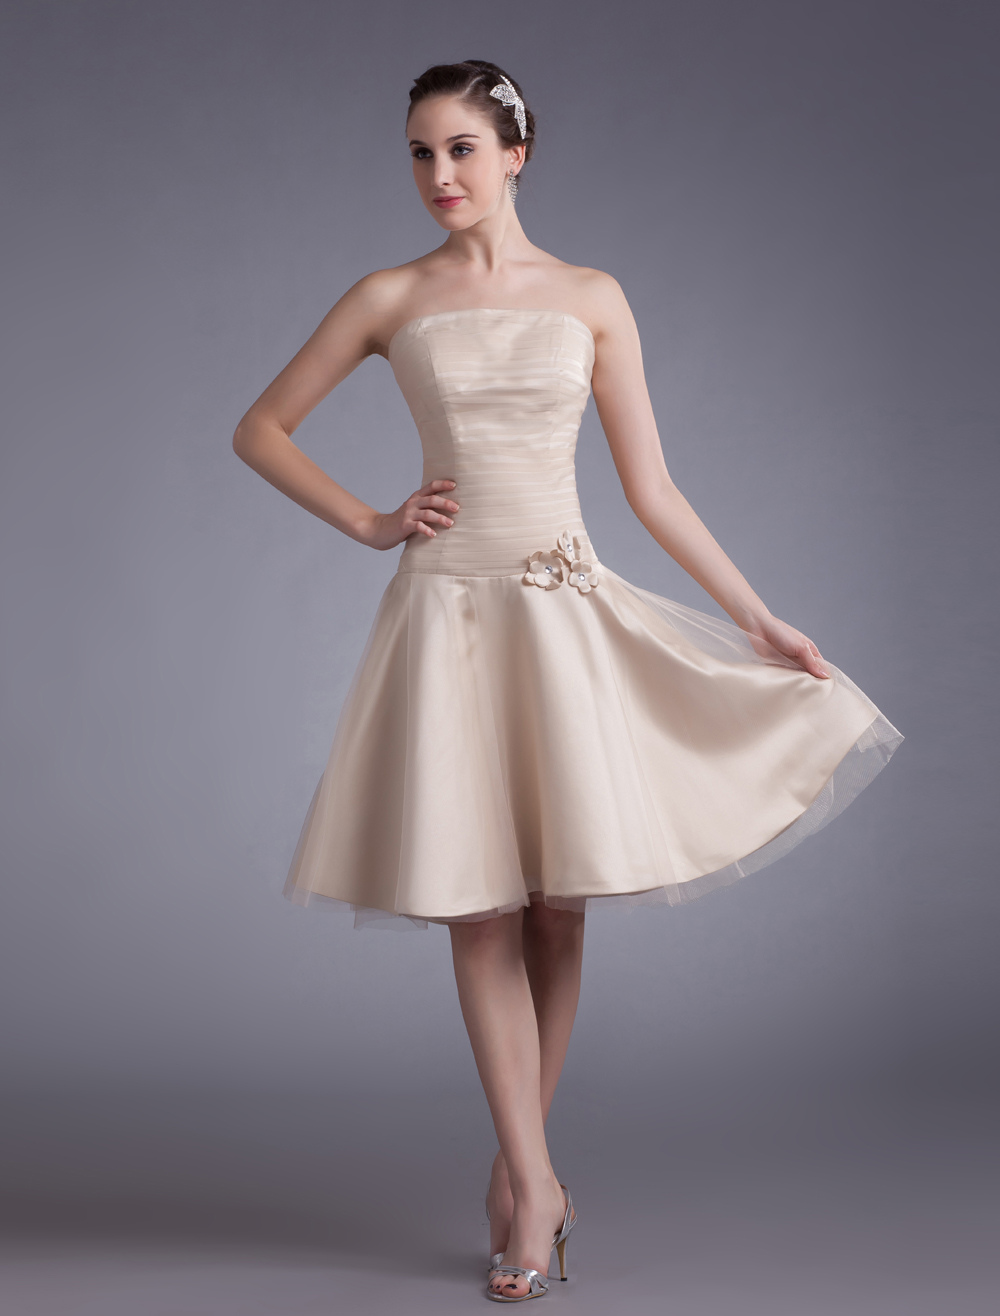 Champagne Cocktail Dress Strapless Knee-Length Applique Flowers Tulle Dress (Wedding Cheap Party Dress) photo